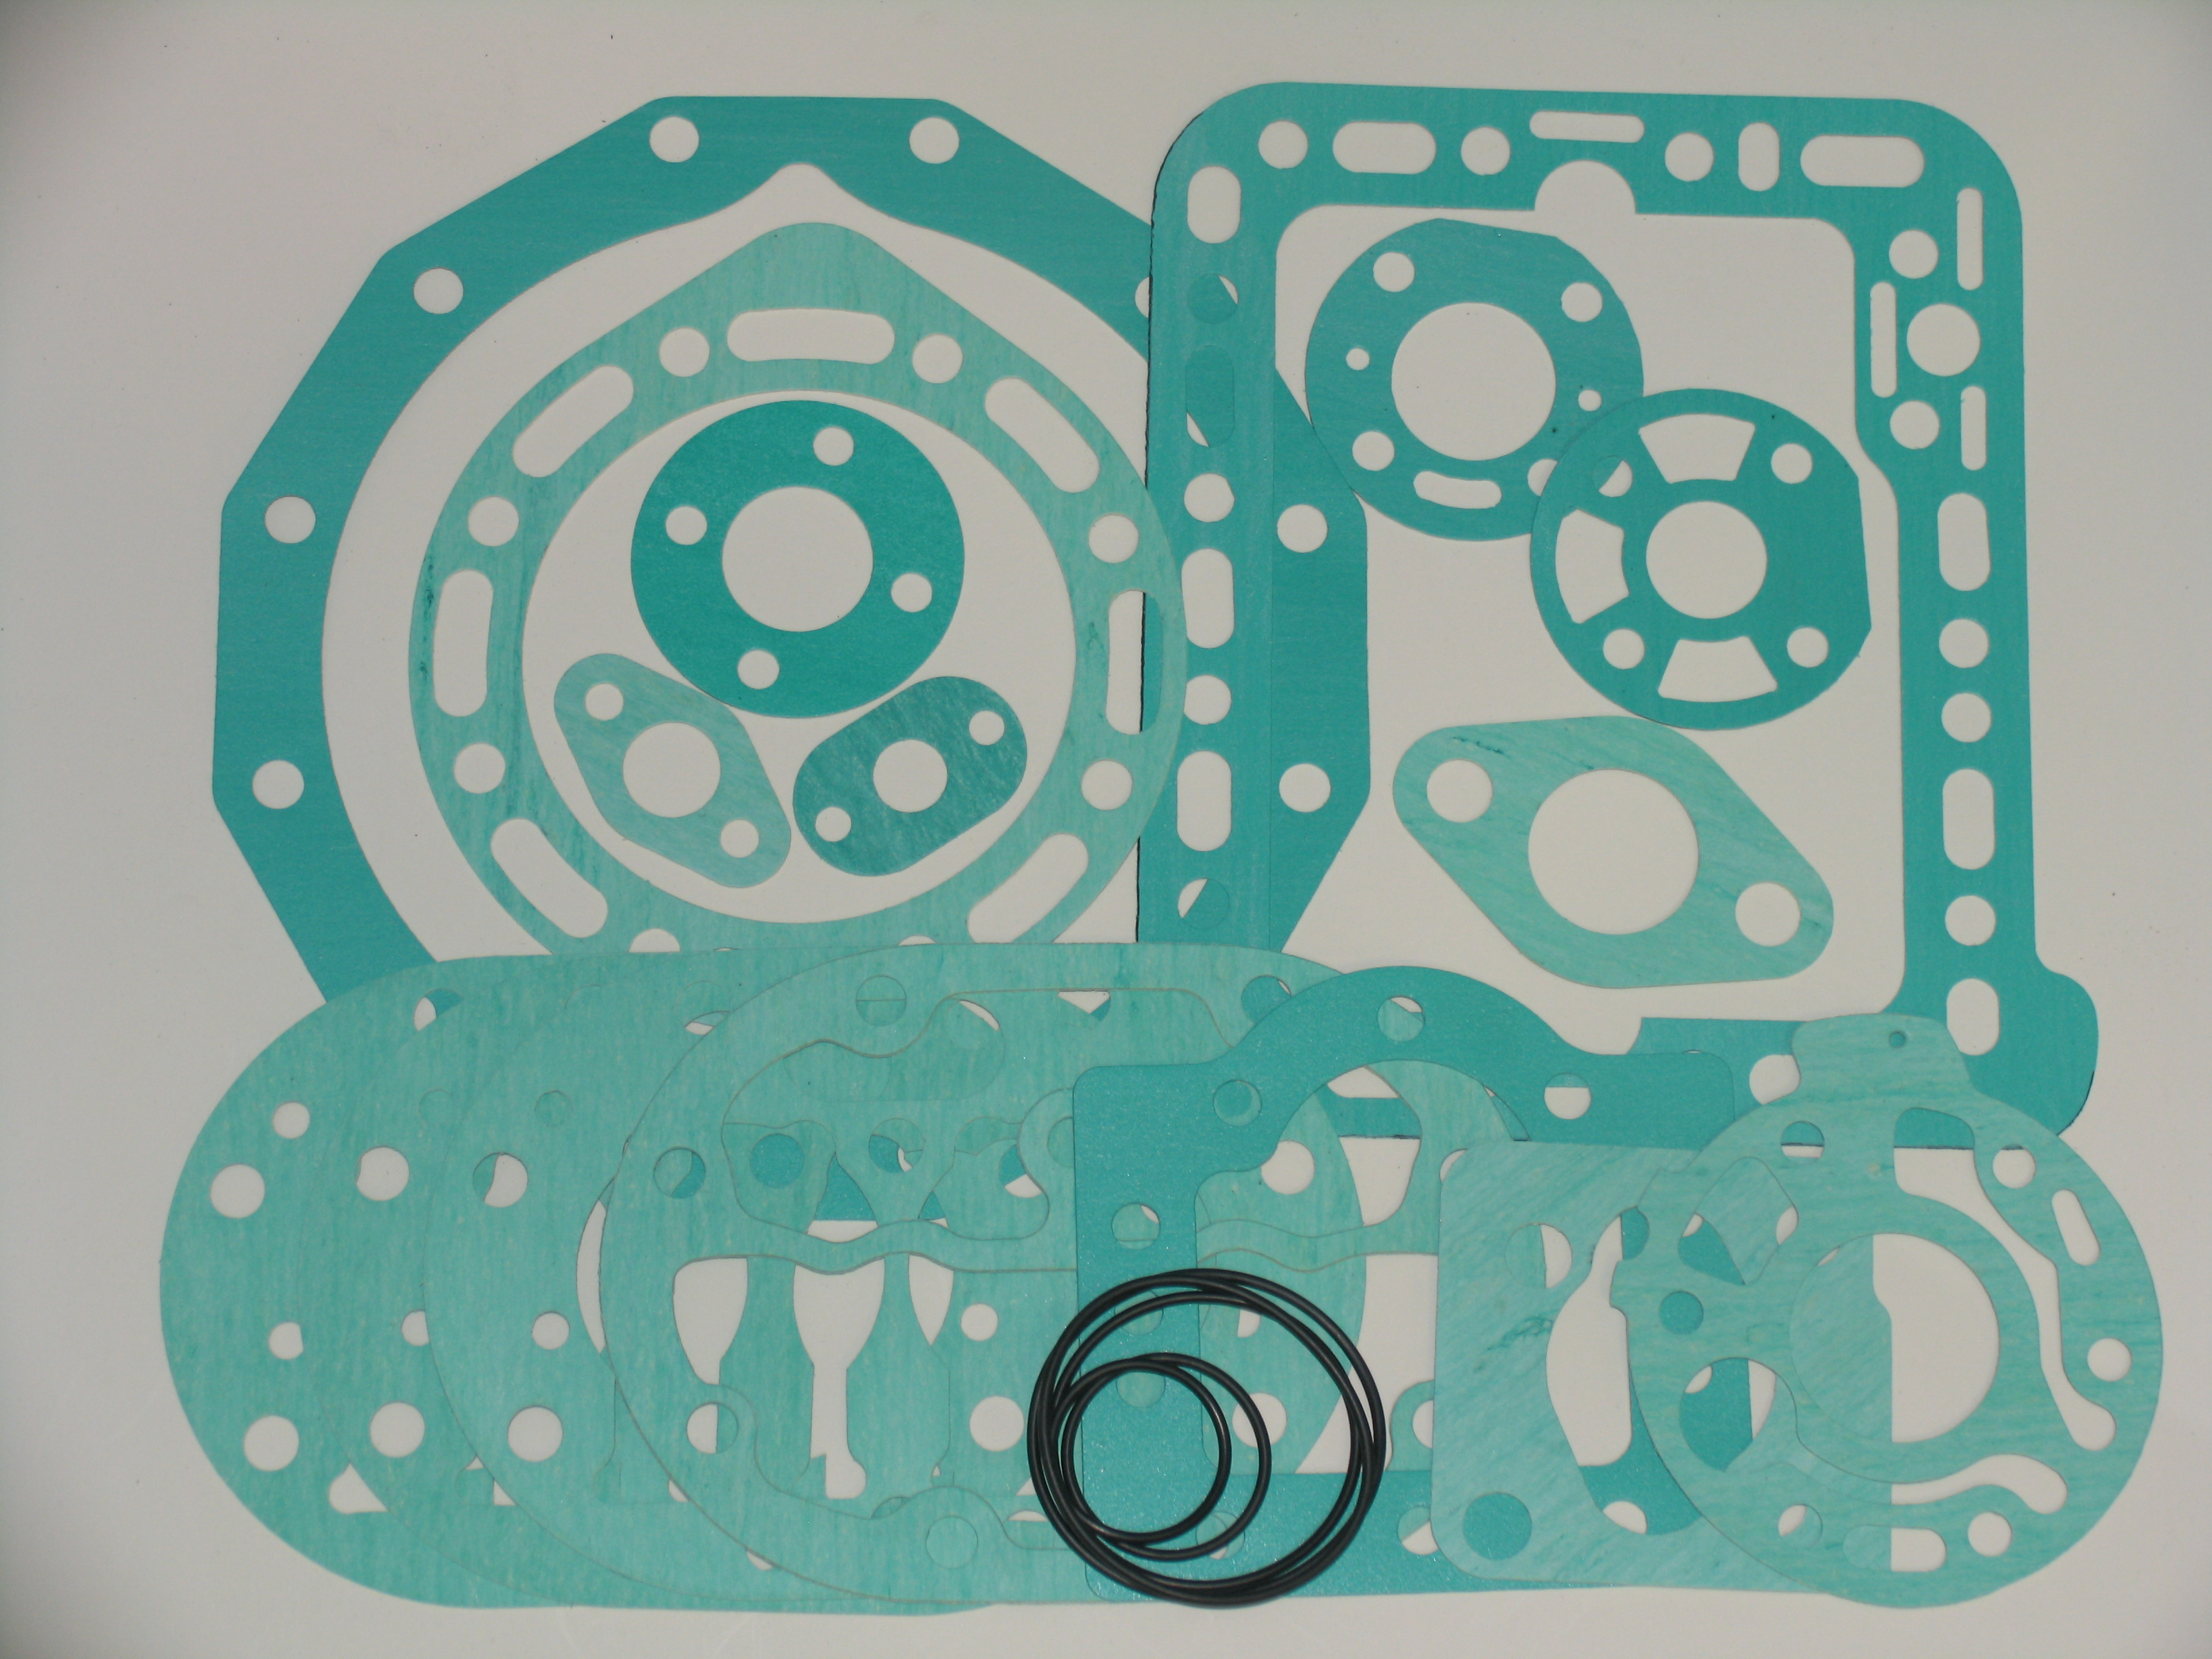 KIT-5305 Gasket Kit; L and N Model R/N 998-0669-16,-18, -19, -49